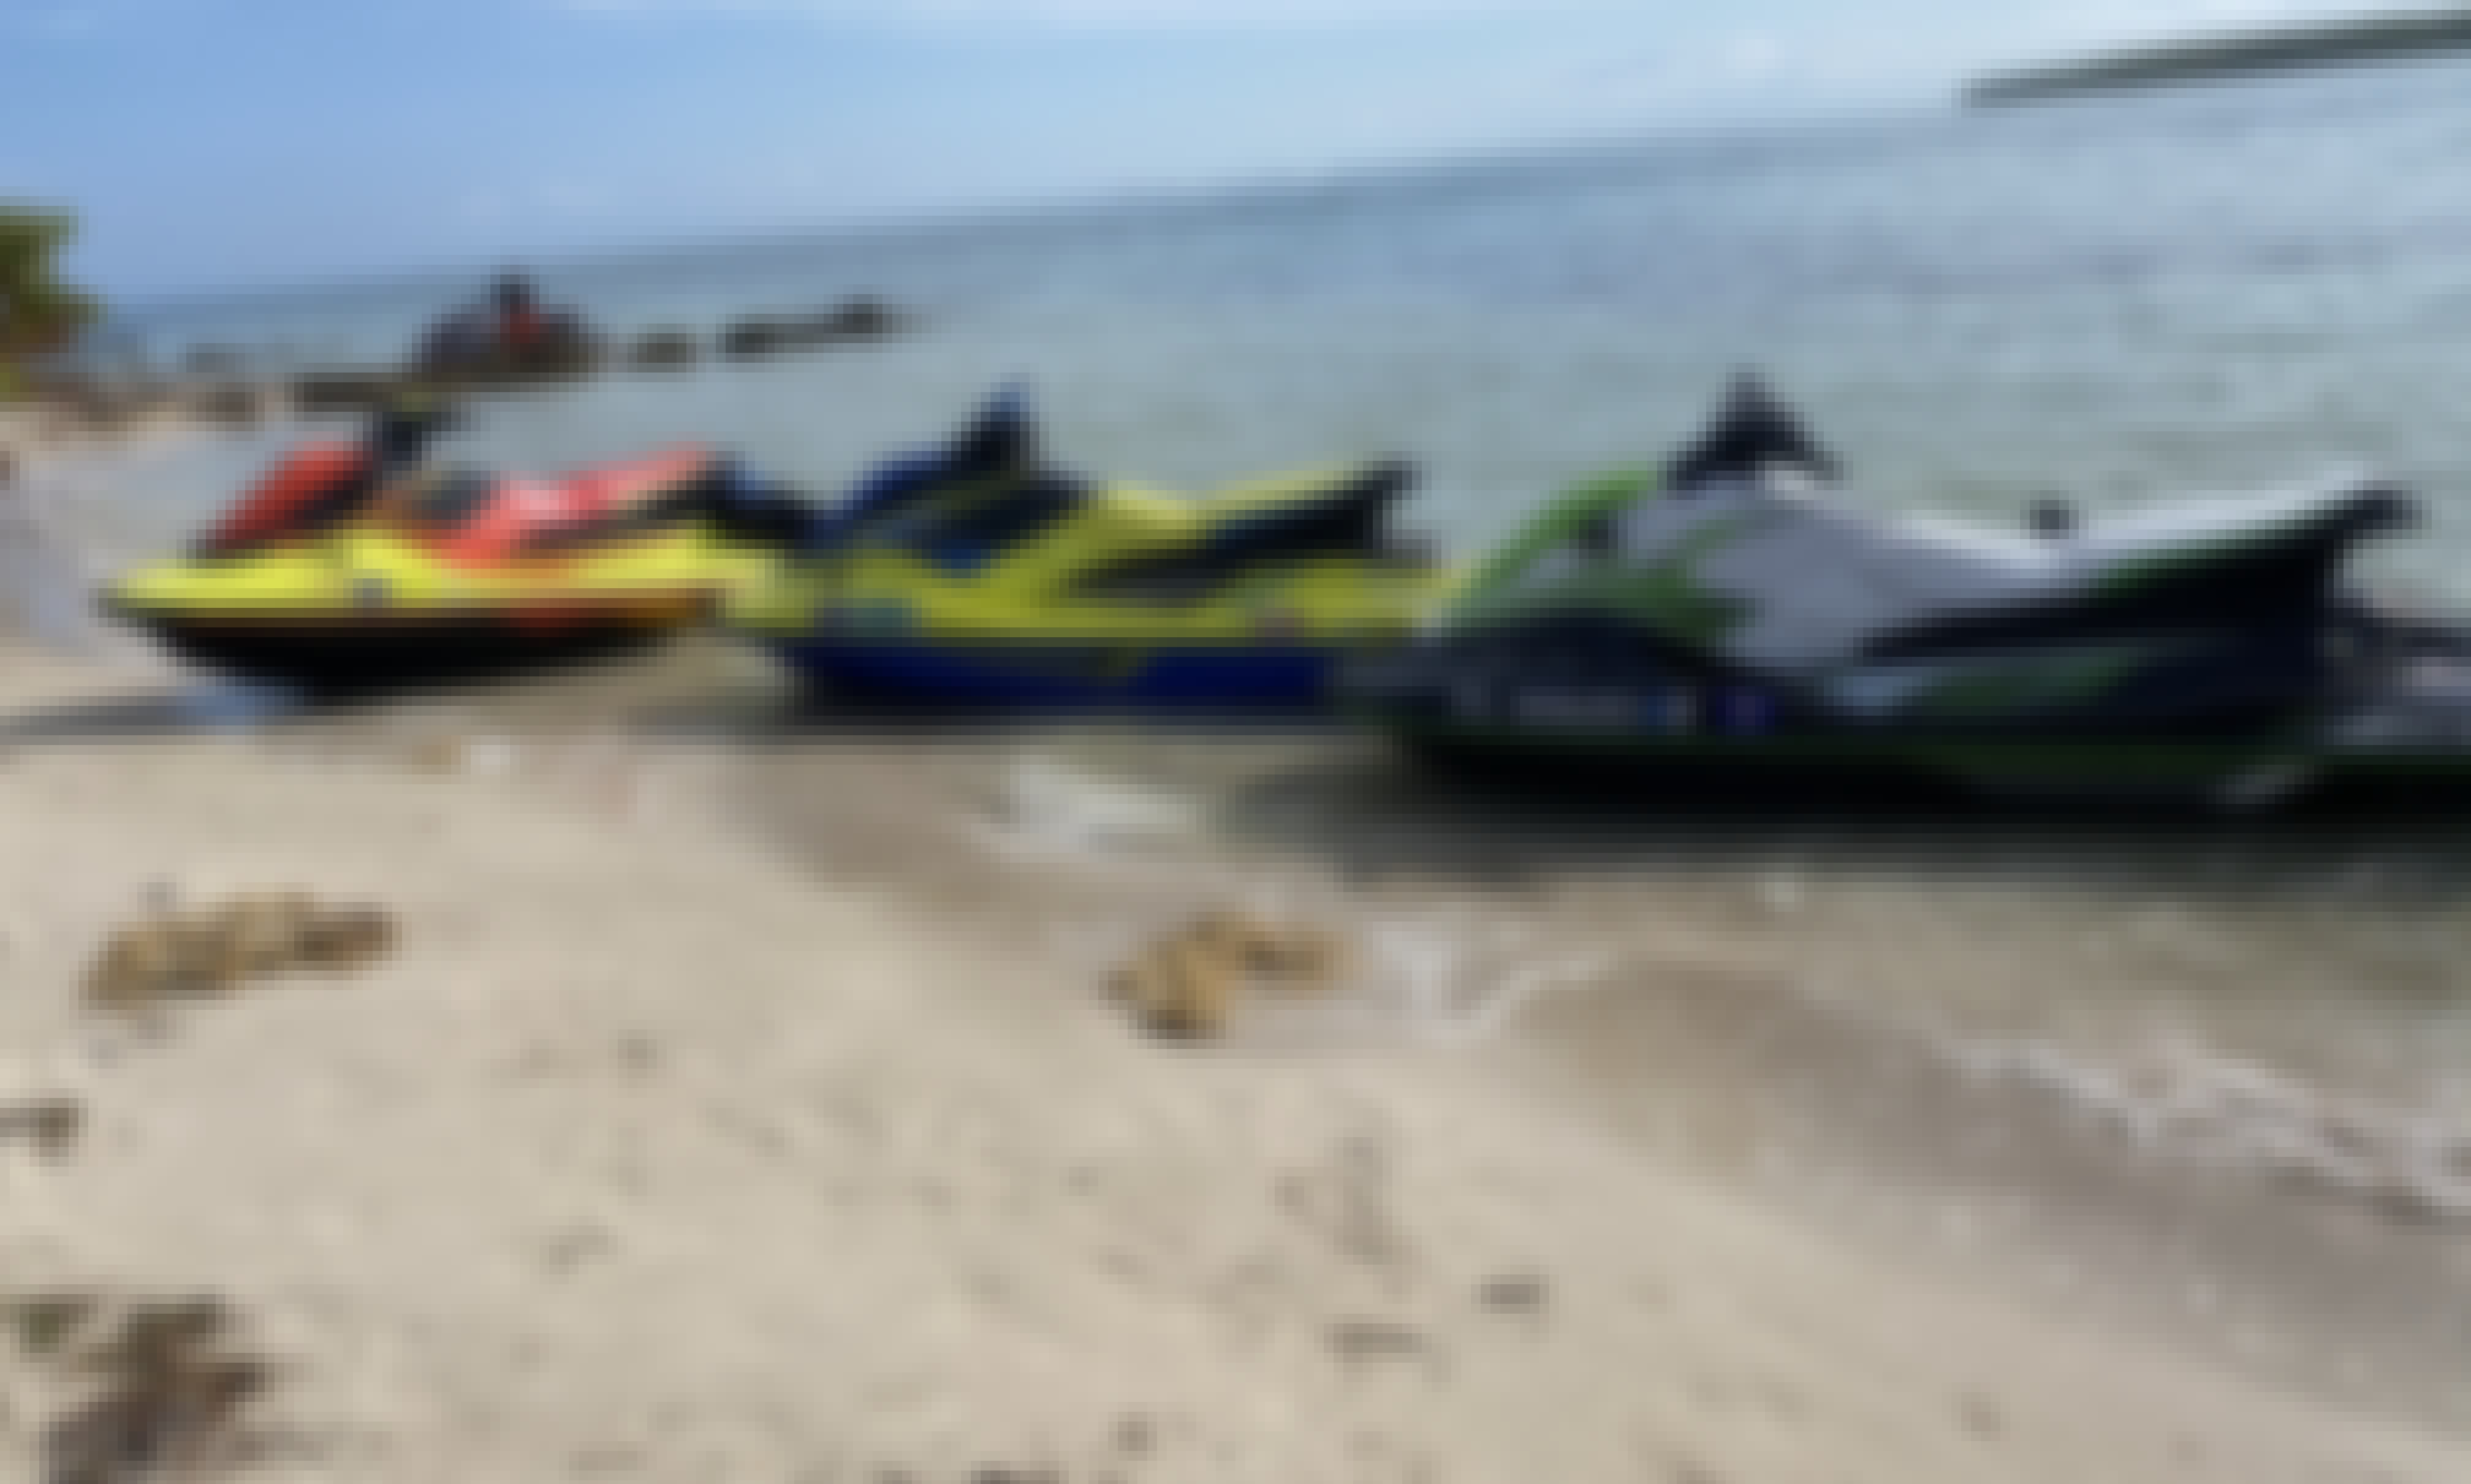 2021 Yamaha EXR Jetskis for Rent in Key Biscayne